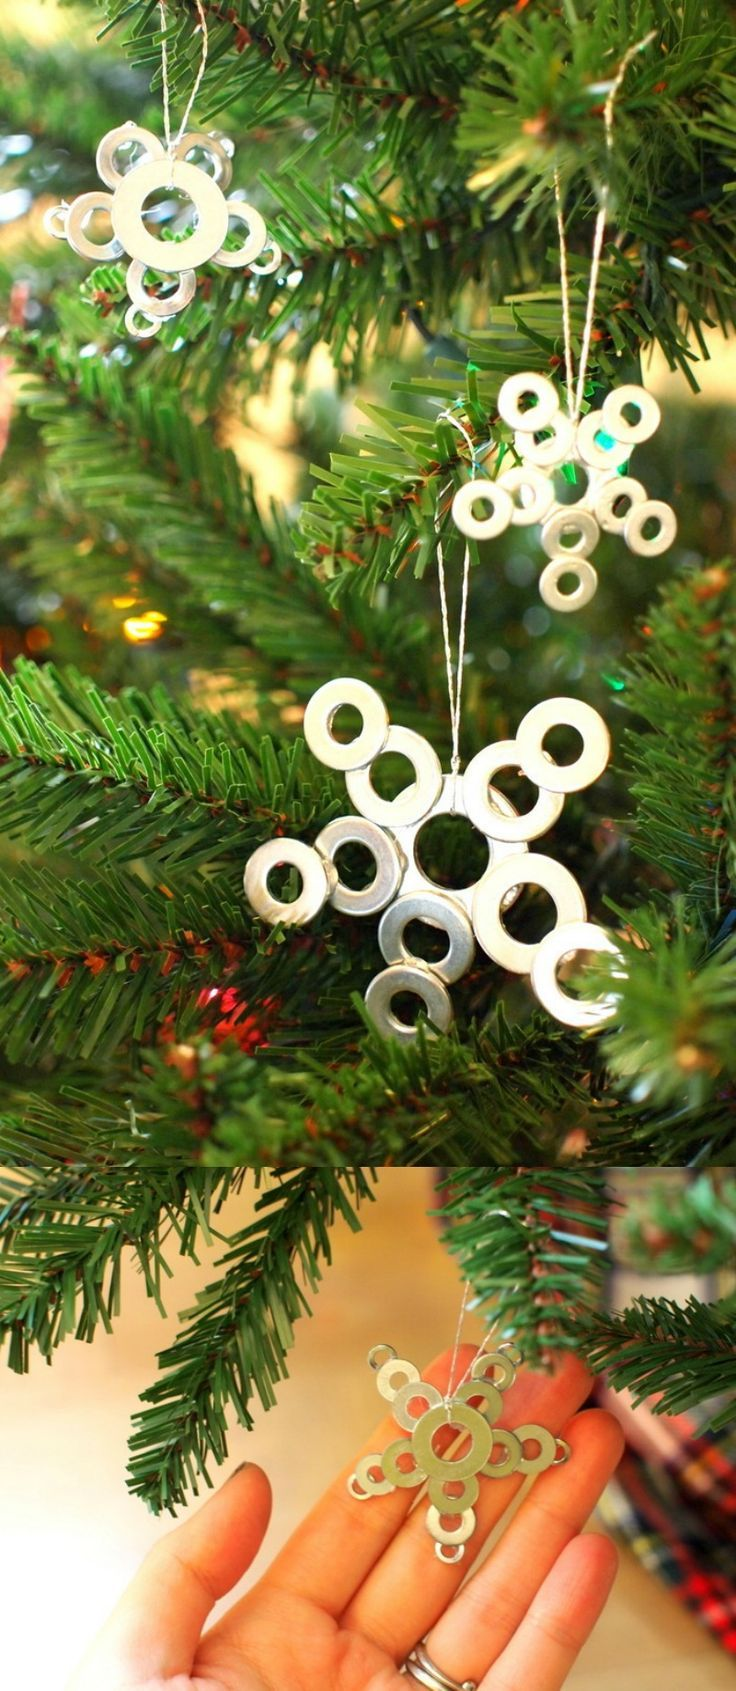 DIY Star Ornaments Made From Washers Diy christmas star